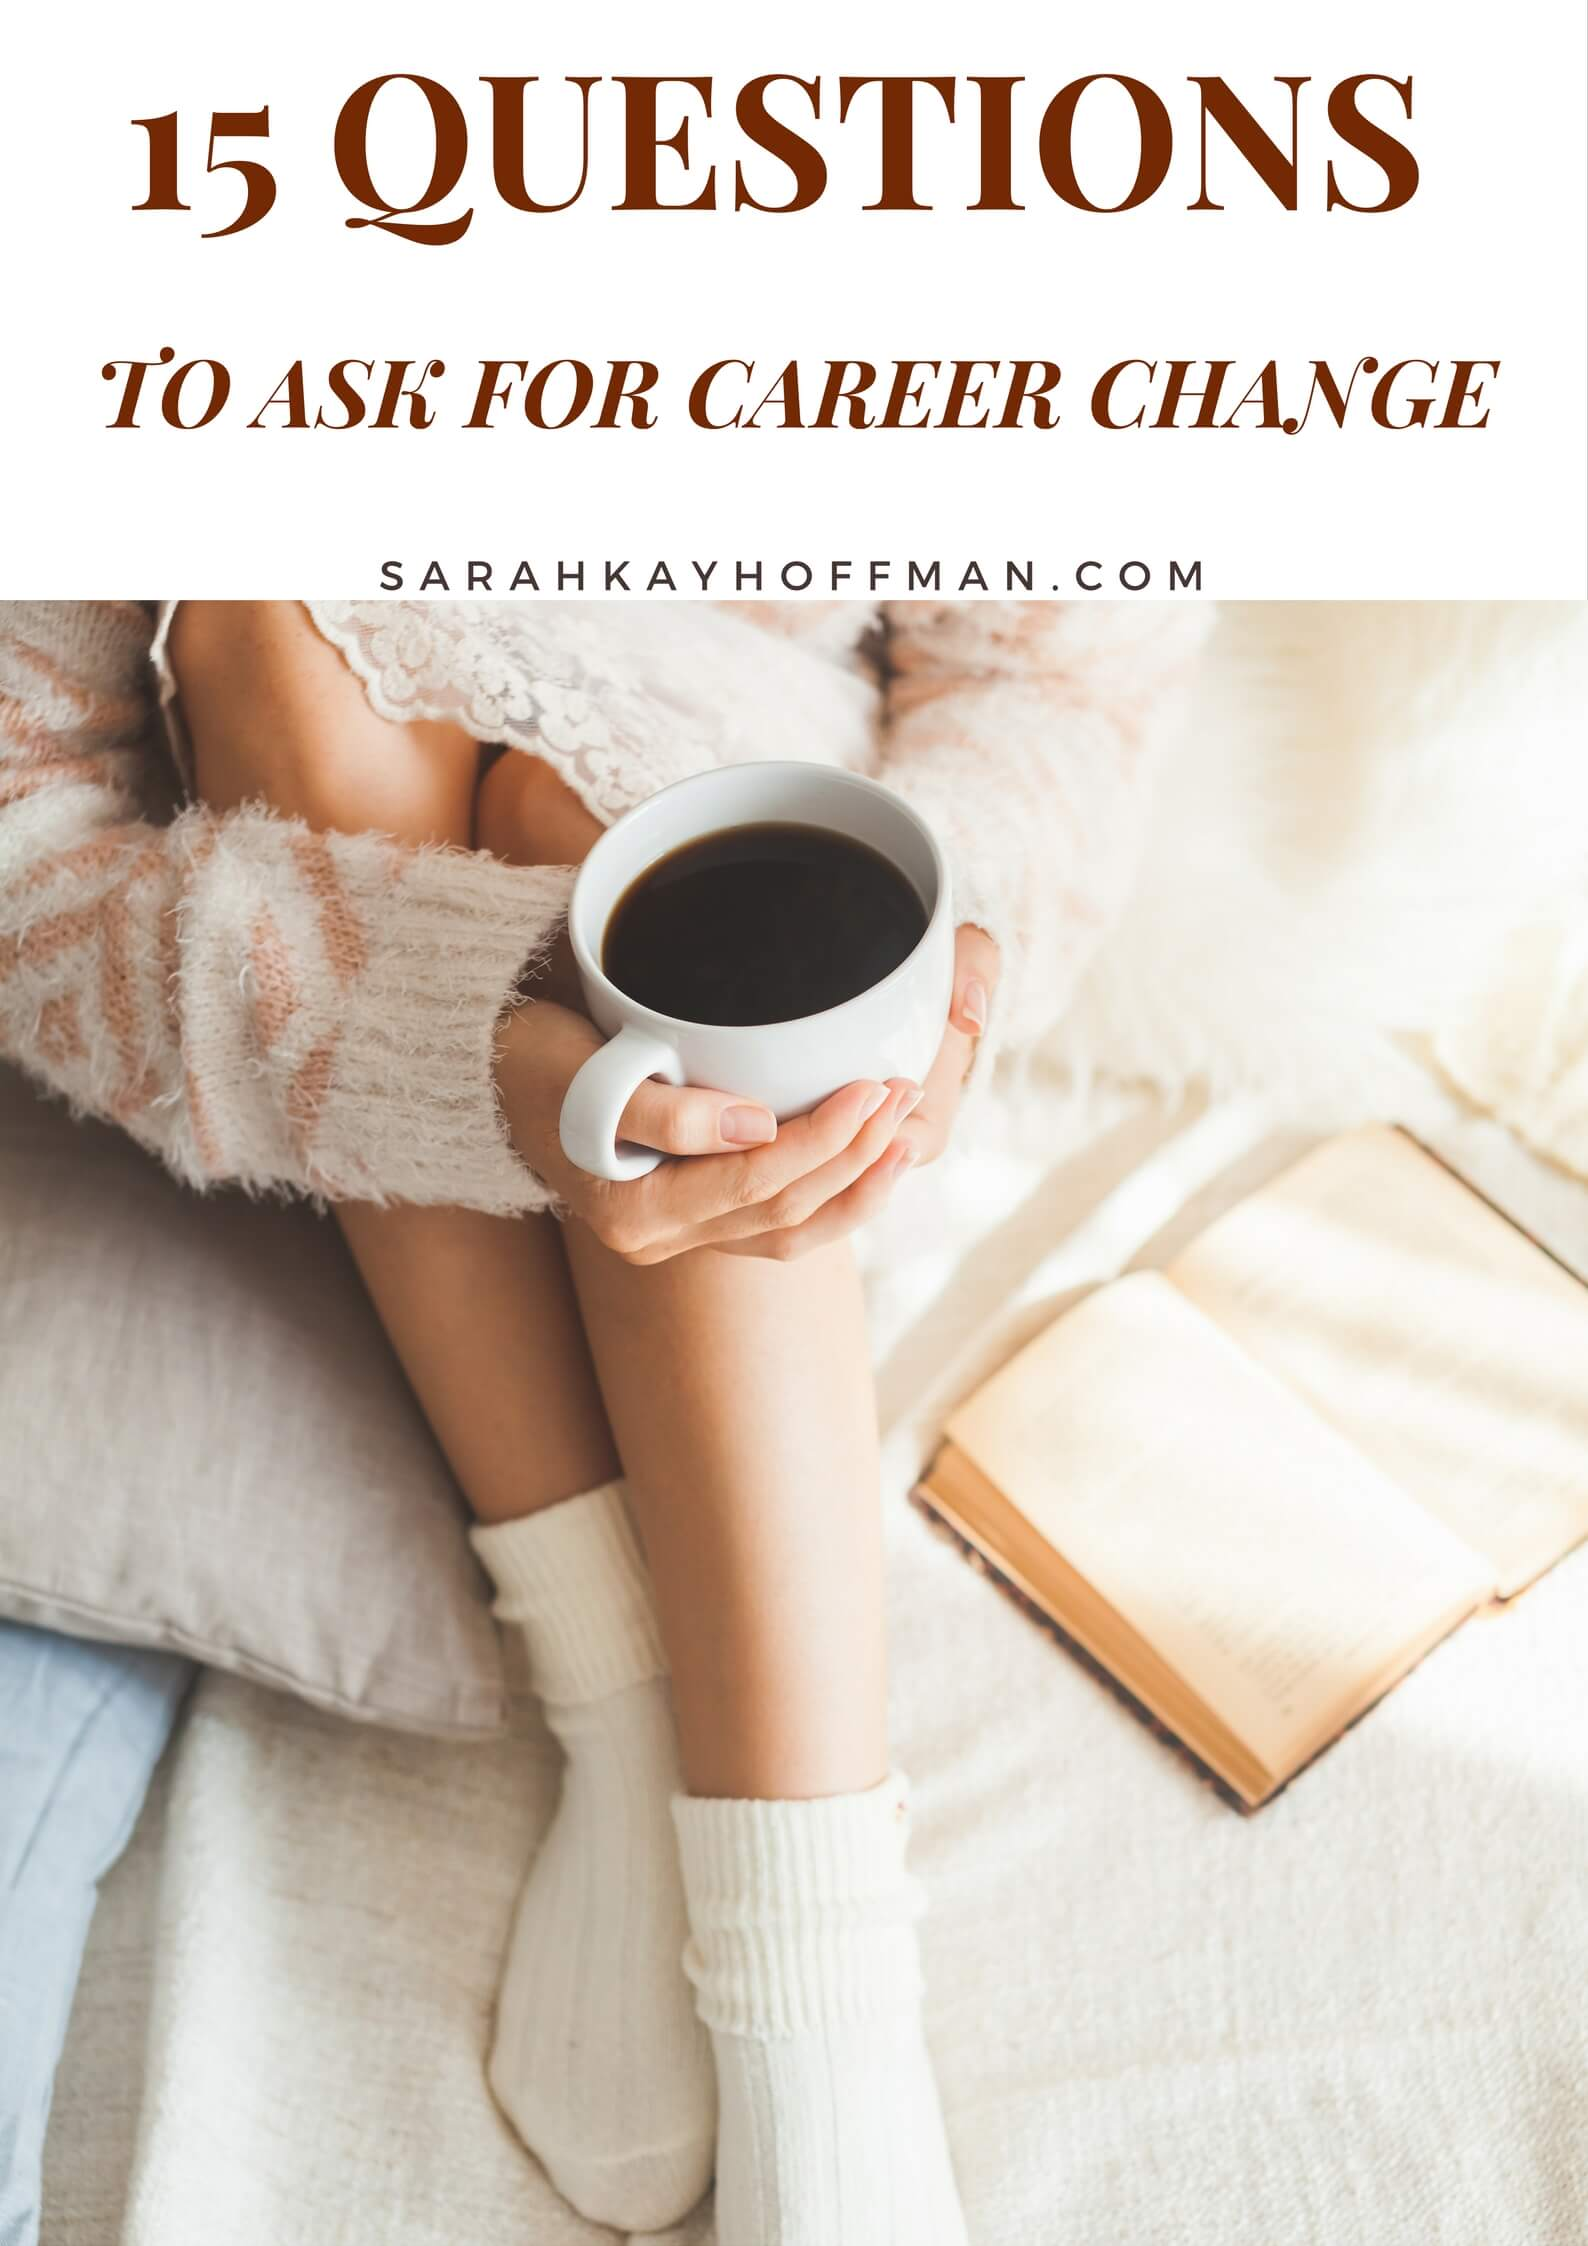 15 Questions to Ask for Career Change sarahkayhoffman.com LinkedIn Sarah Kay Hoffman Content Marketing